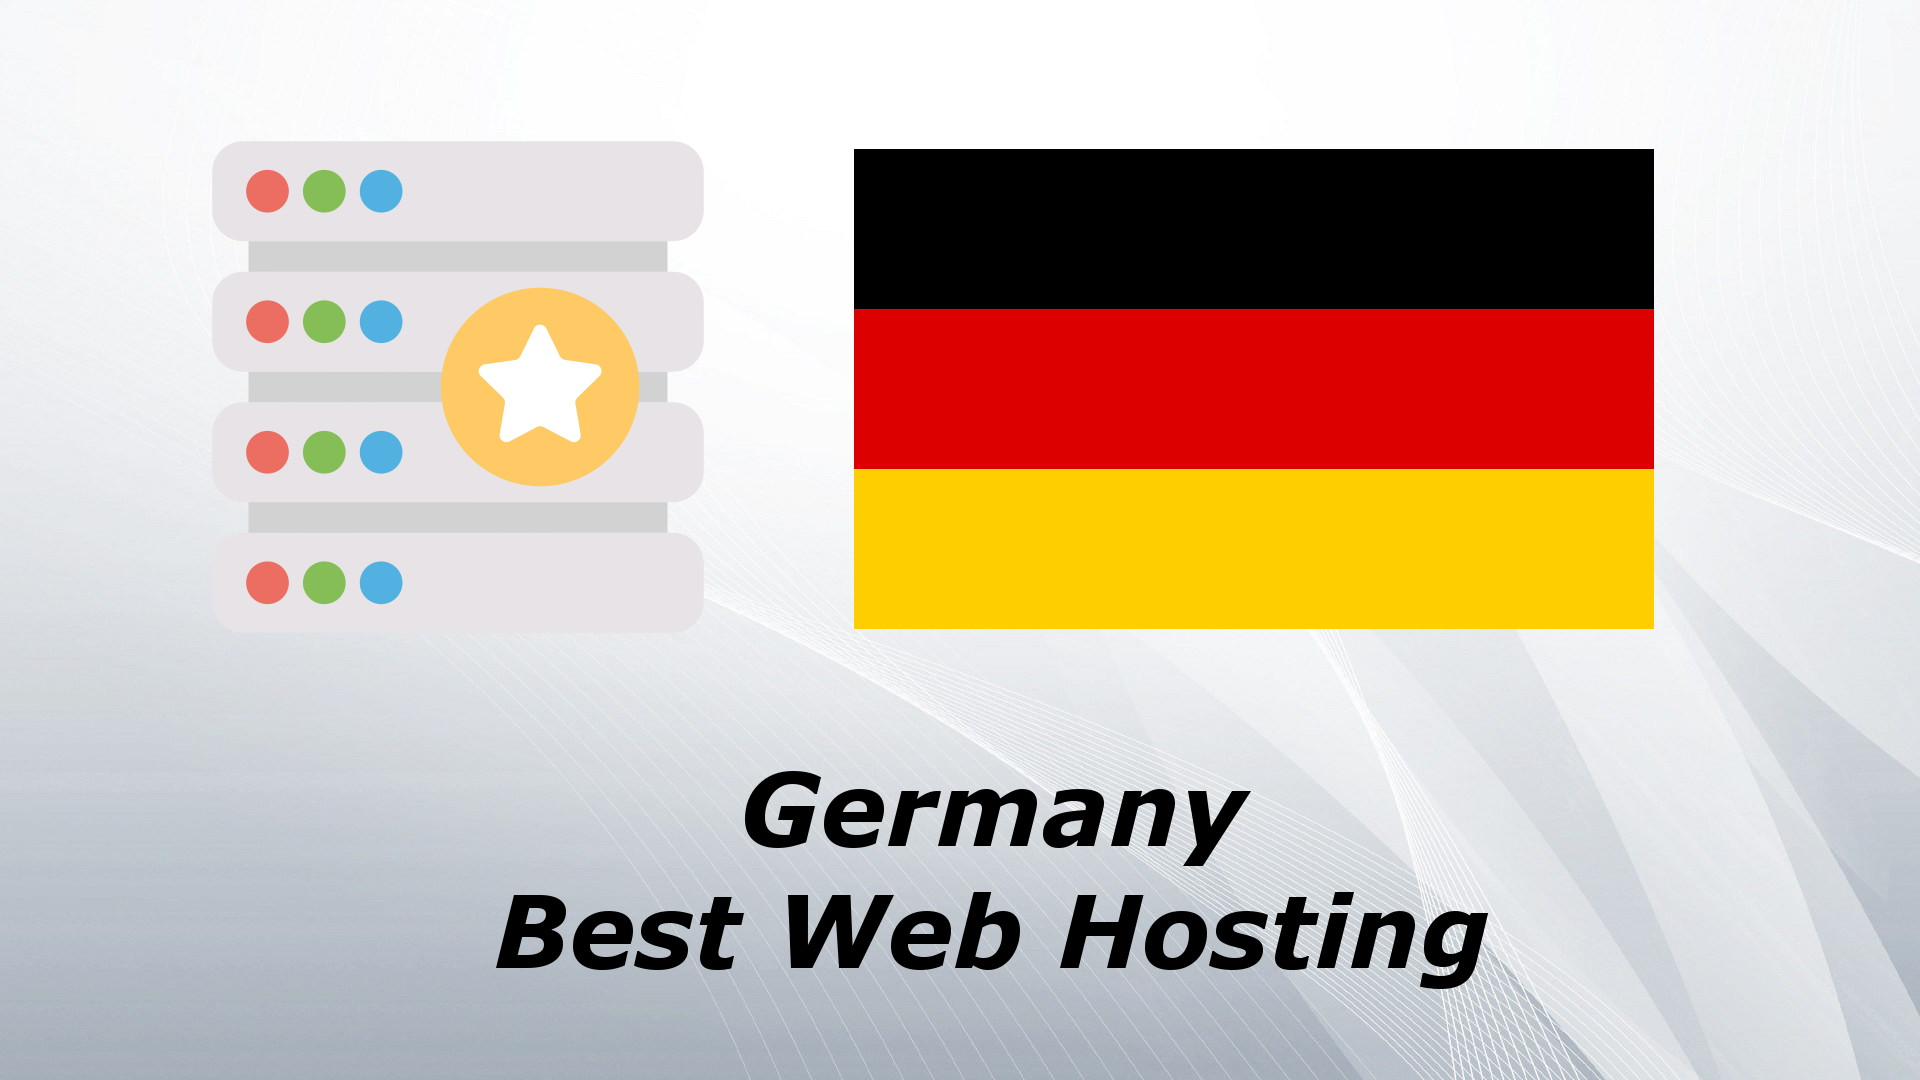 Germany Best Web Hosting